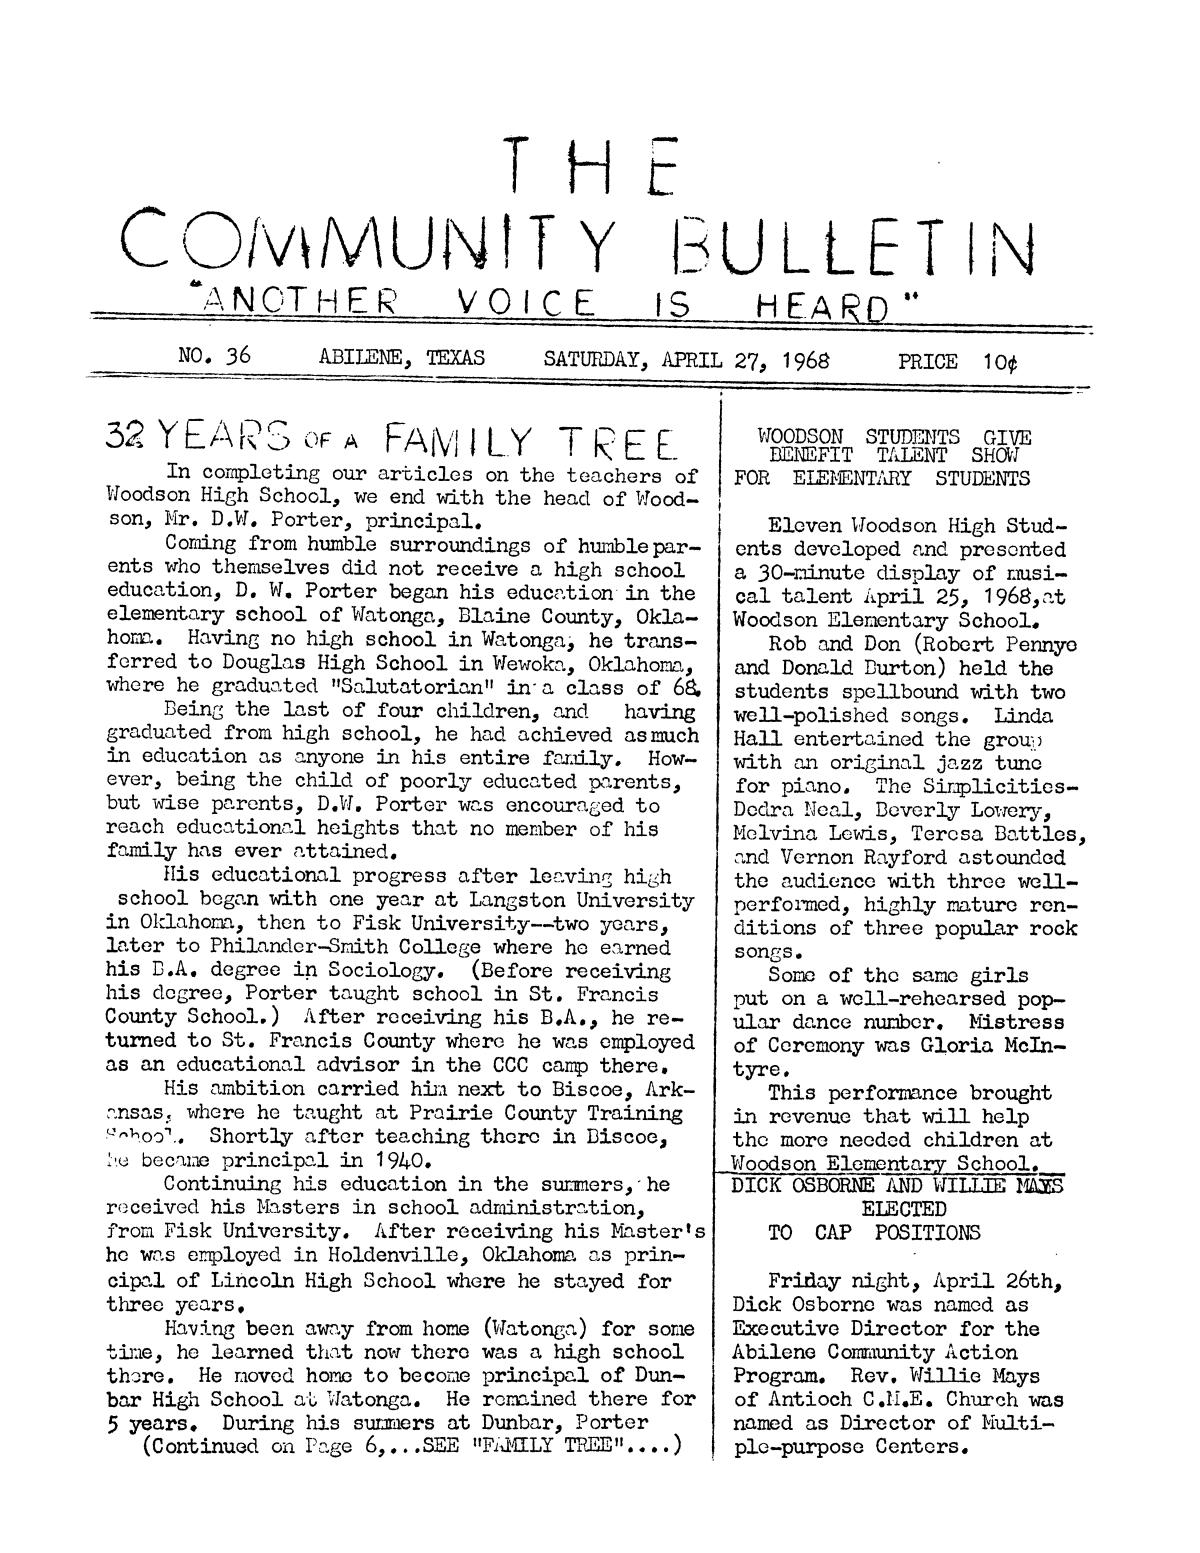 The Community Bulletin (Abilene, Texas), No. 36, Saturday, April 27, 1968                                                                                                      1